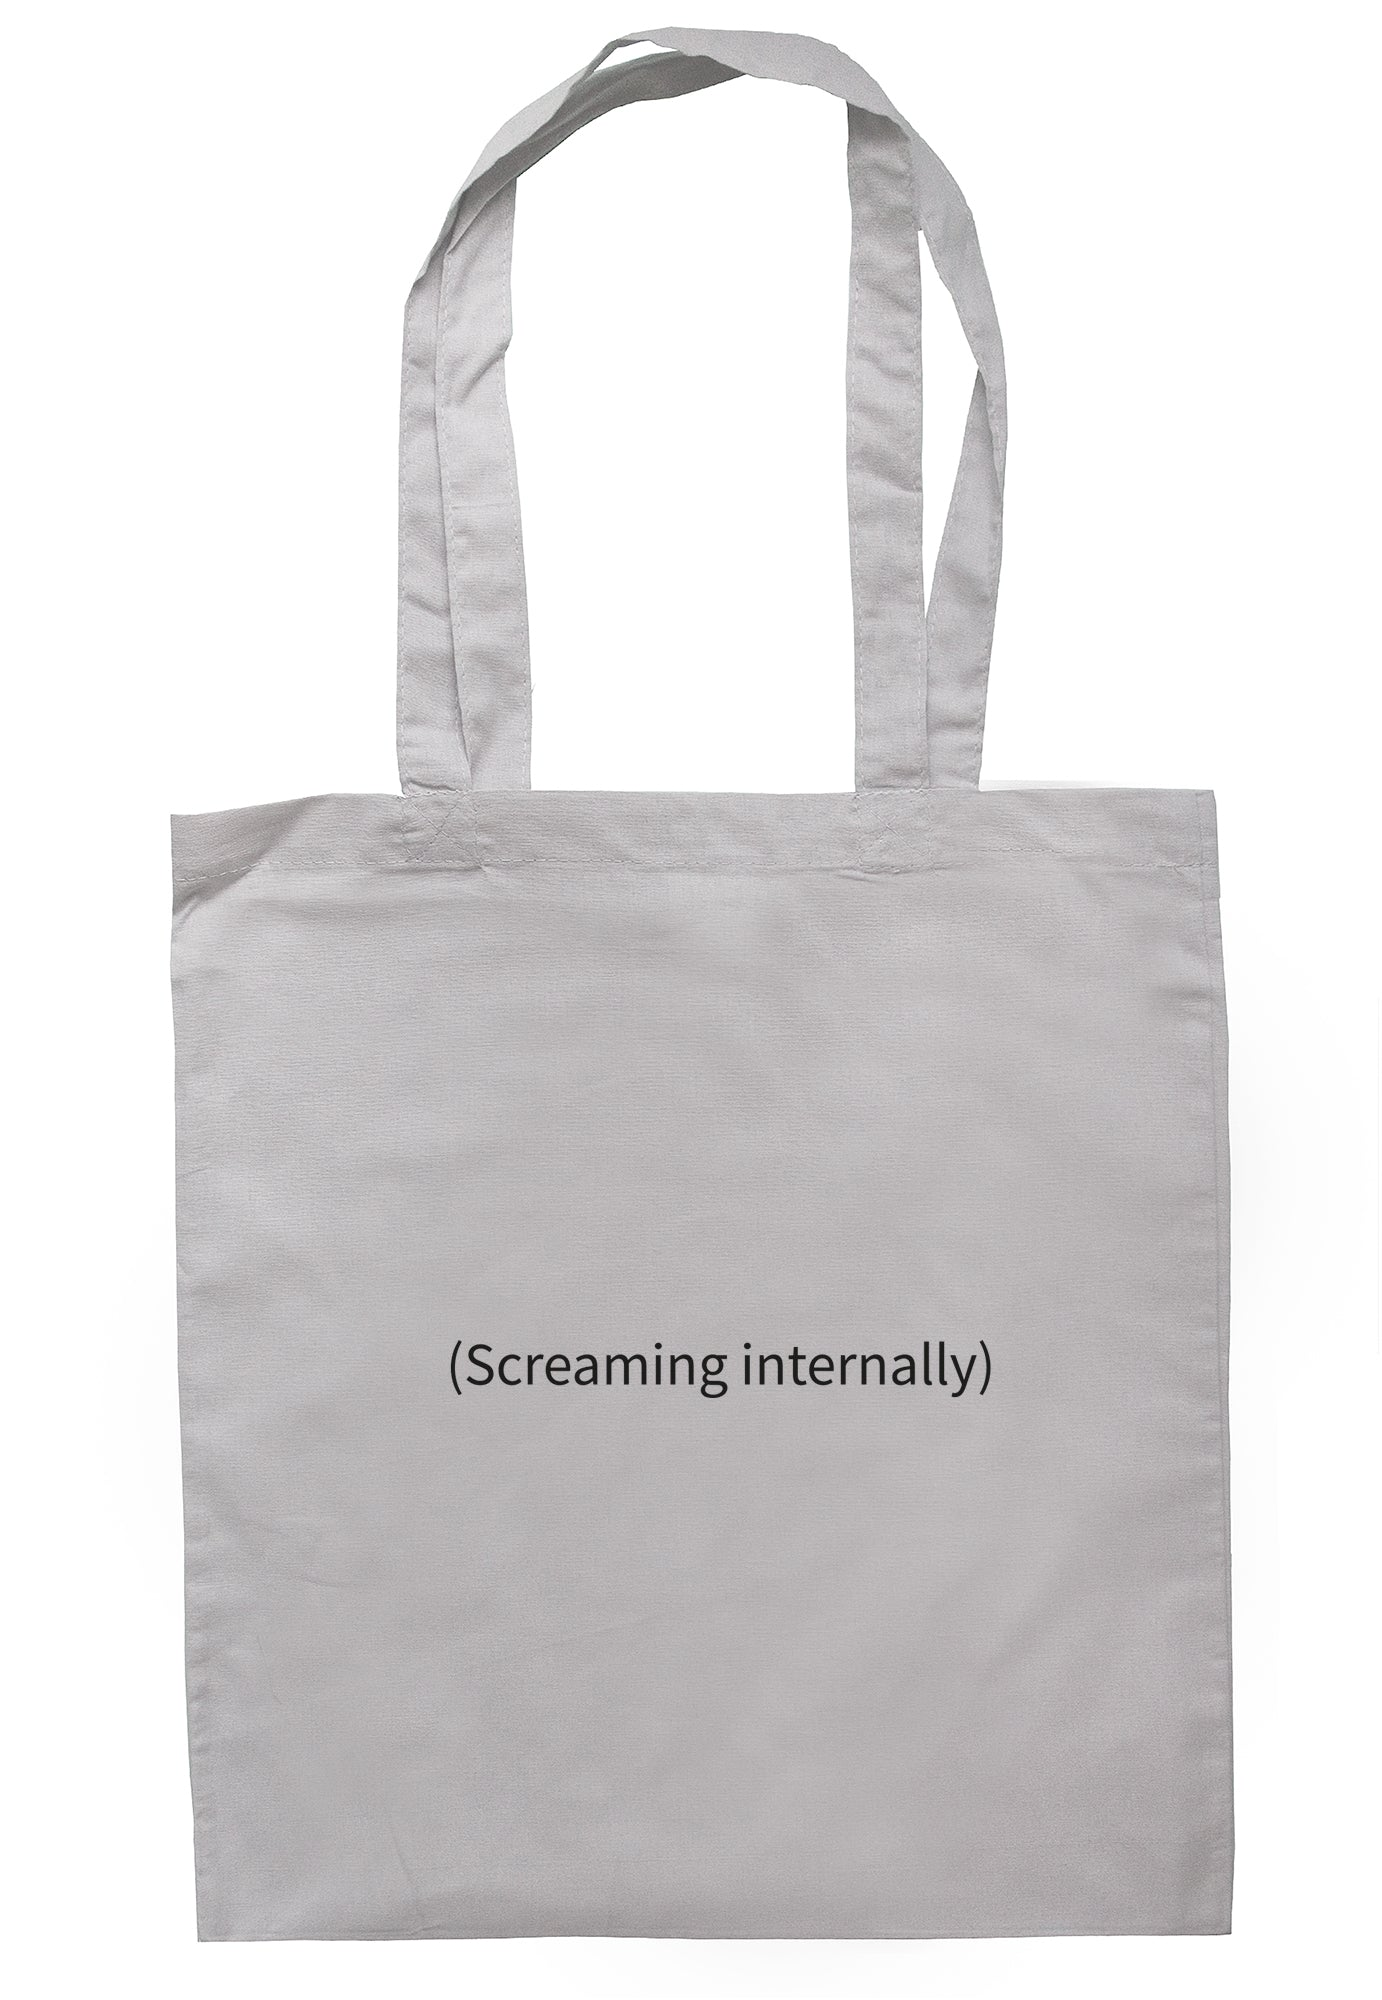 (Screaming Internally) Tote Bag S0981 - Illustrated Identity Ltd.